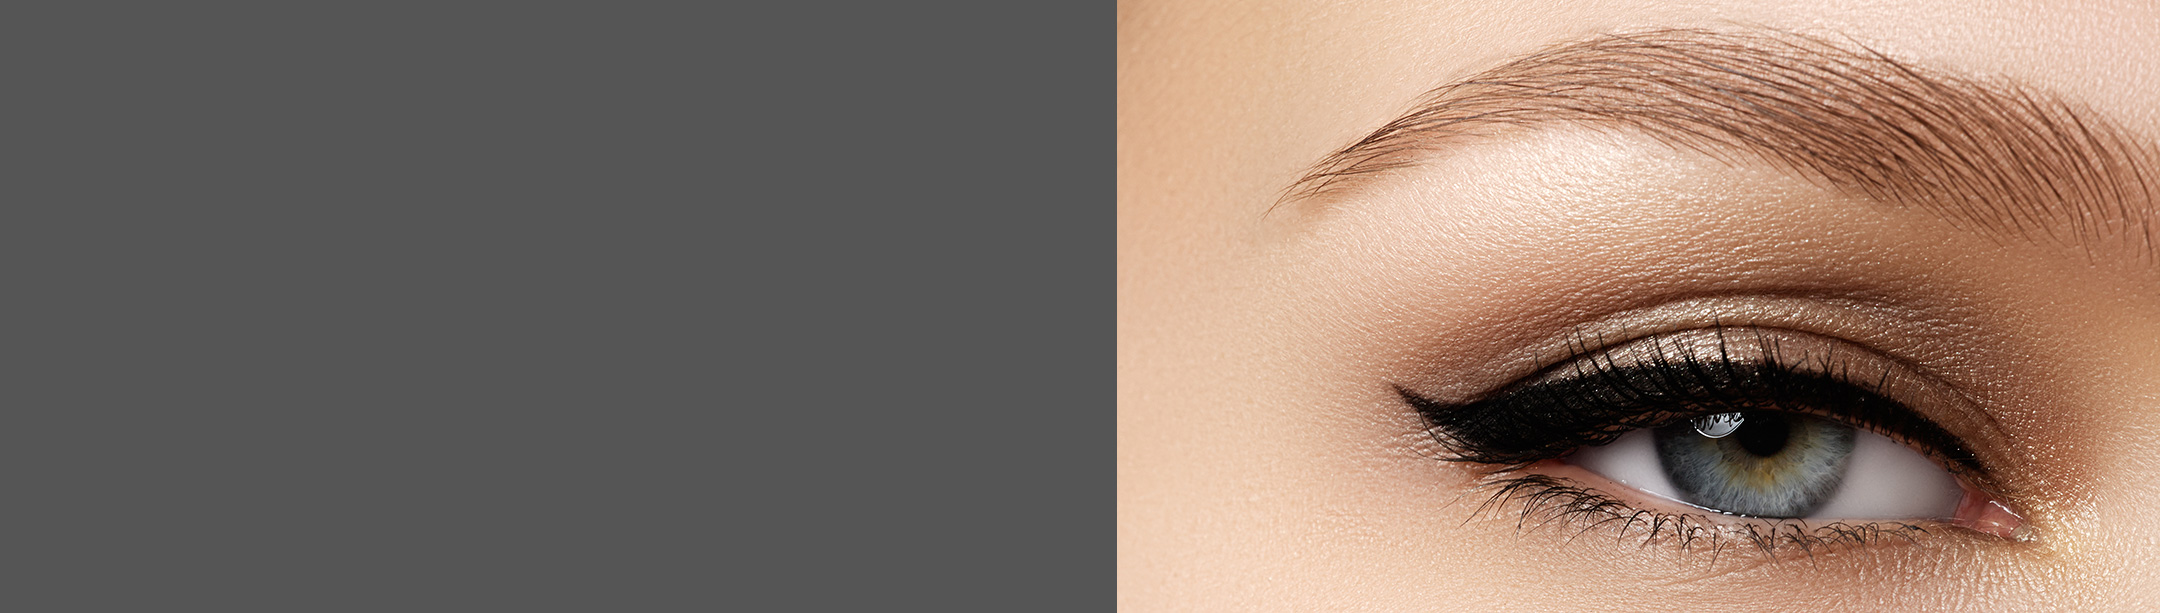 Permanent Cosmetic Design in Boise, ID | Eyelash Extensions